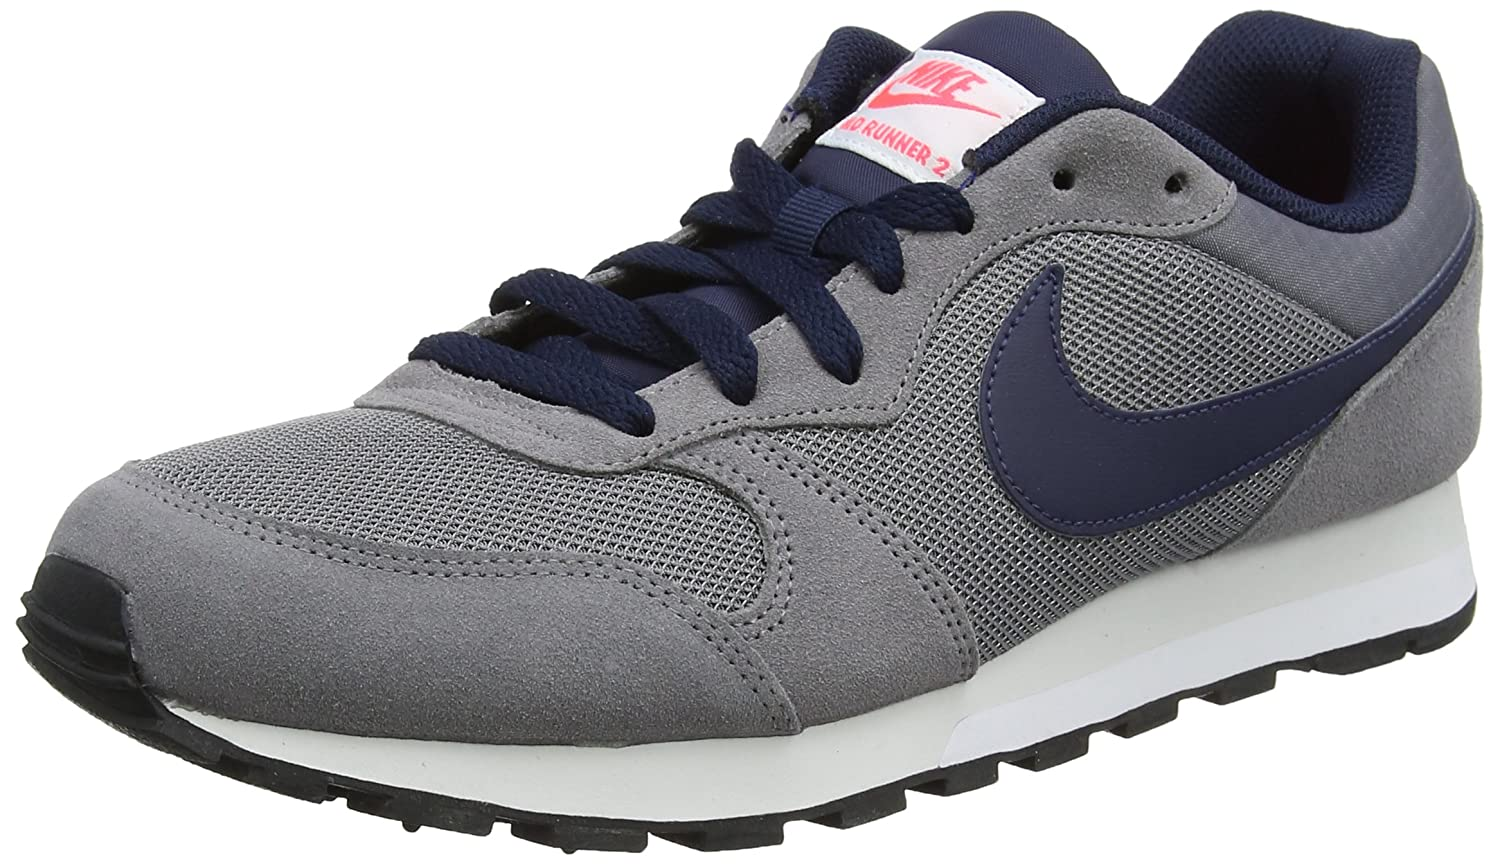 buy online 5fc1b d7495 Amazon.com  NIKE Men s MD Runner 2 Shoes  Sports   Outdoors